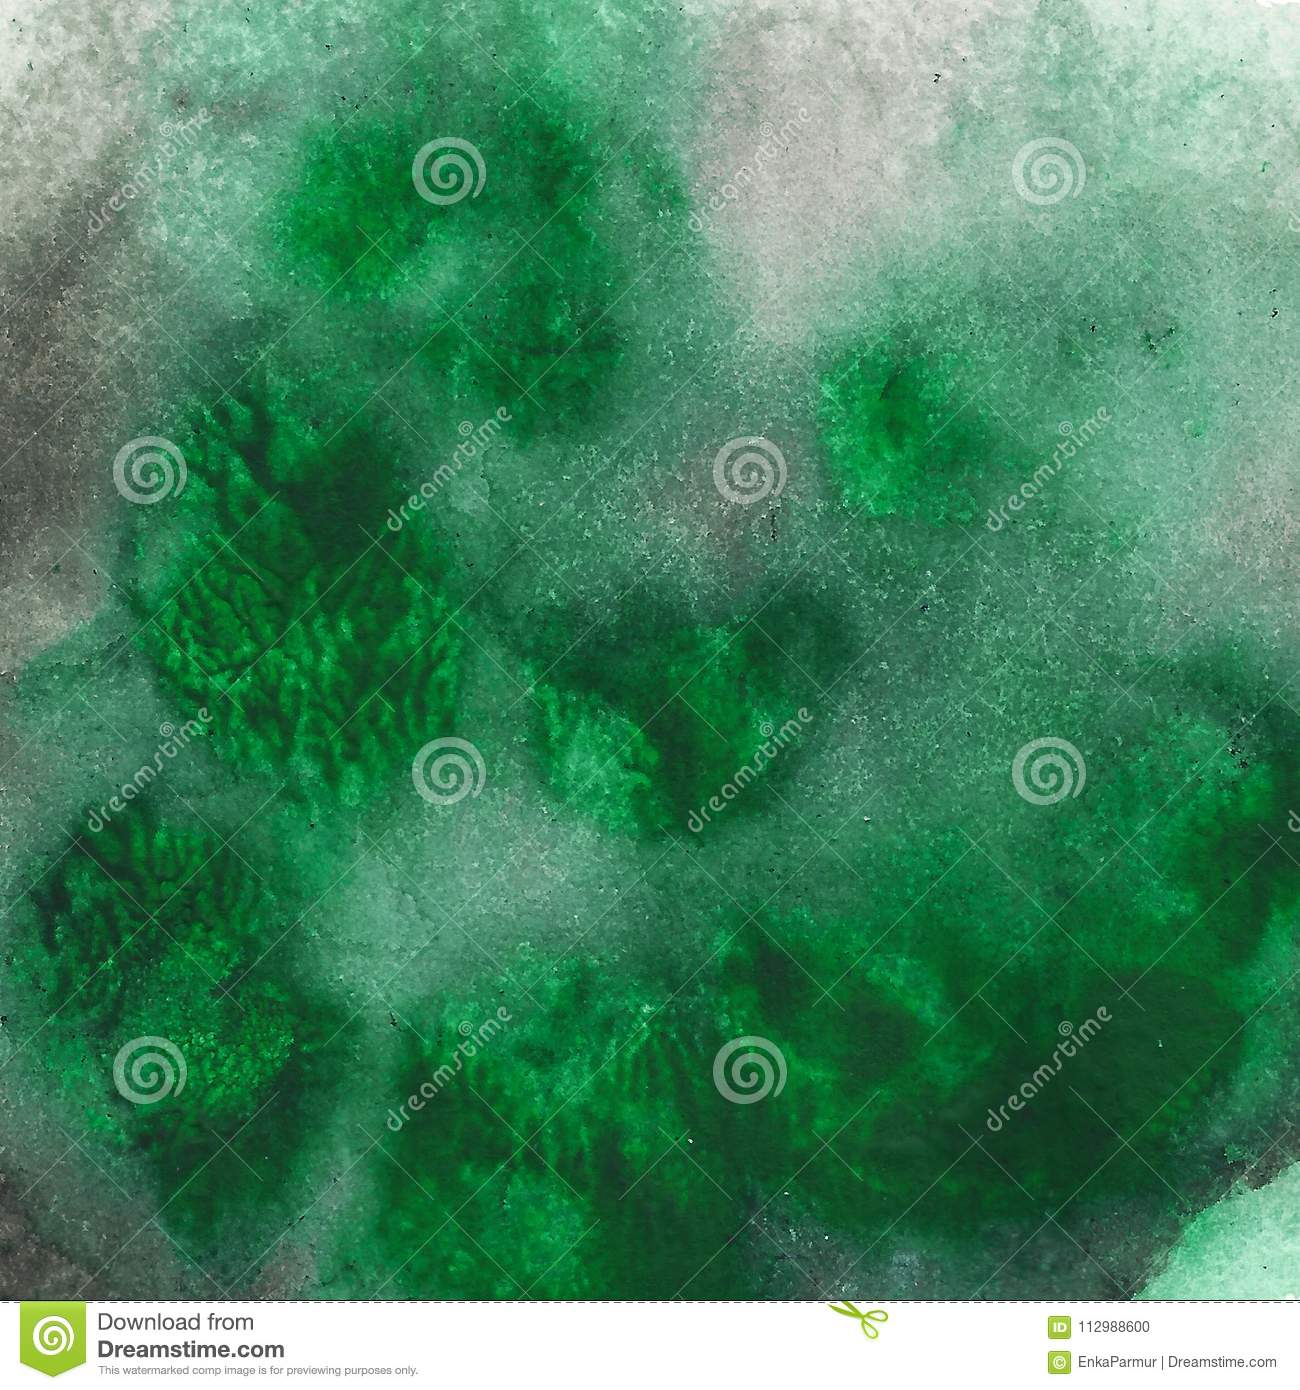 Abstract acrylic painted background. Black green textured vibrant color. Grunge template for your design.